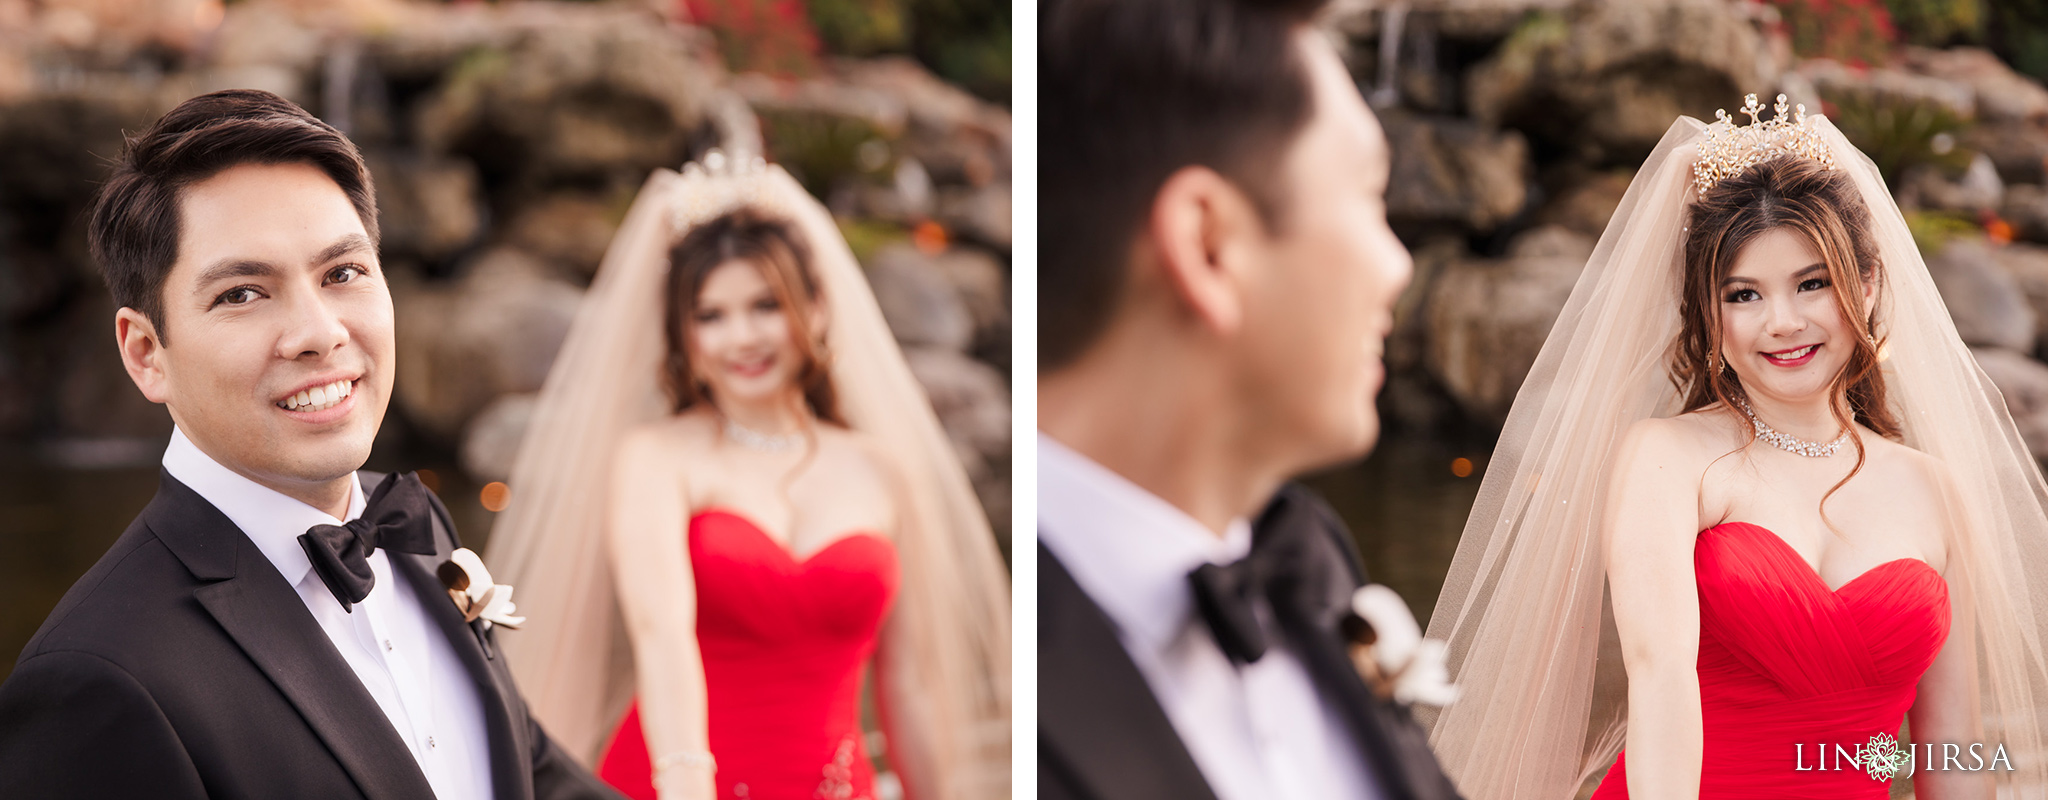 26 four seasons westlake village chinese wedding